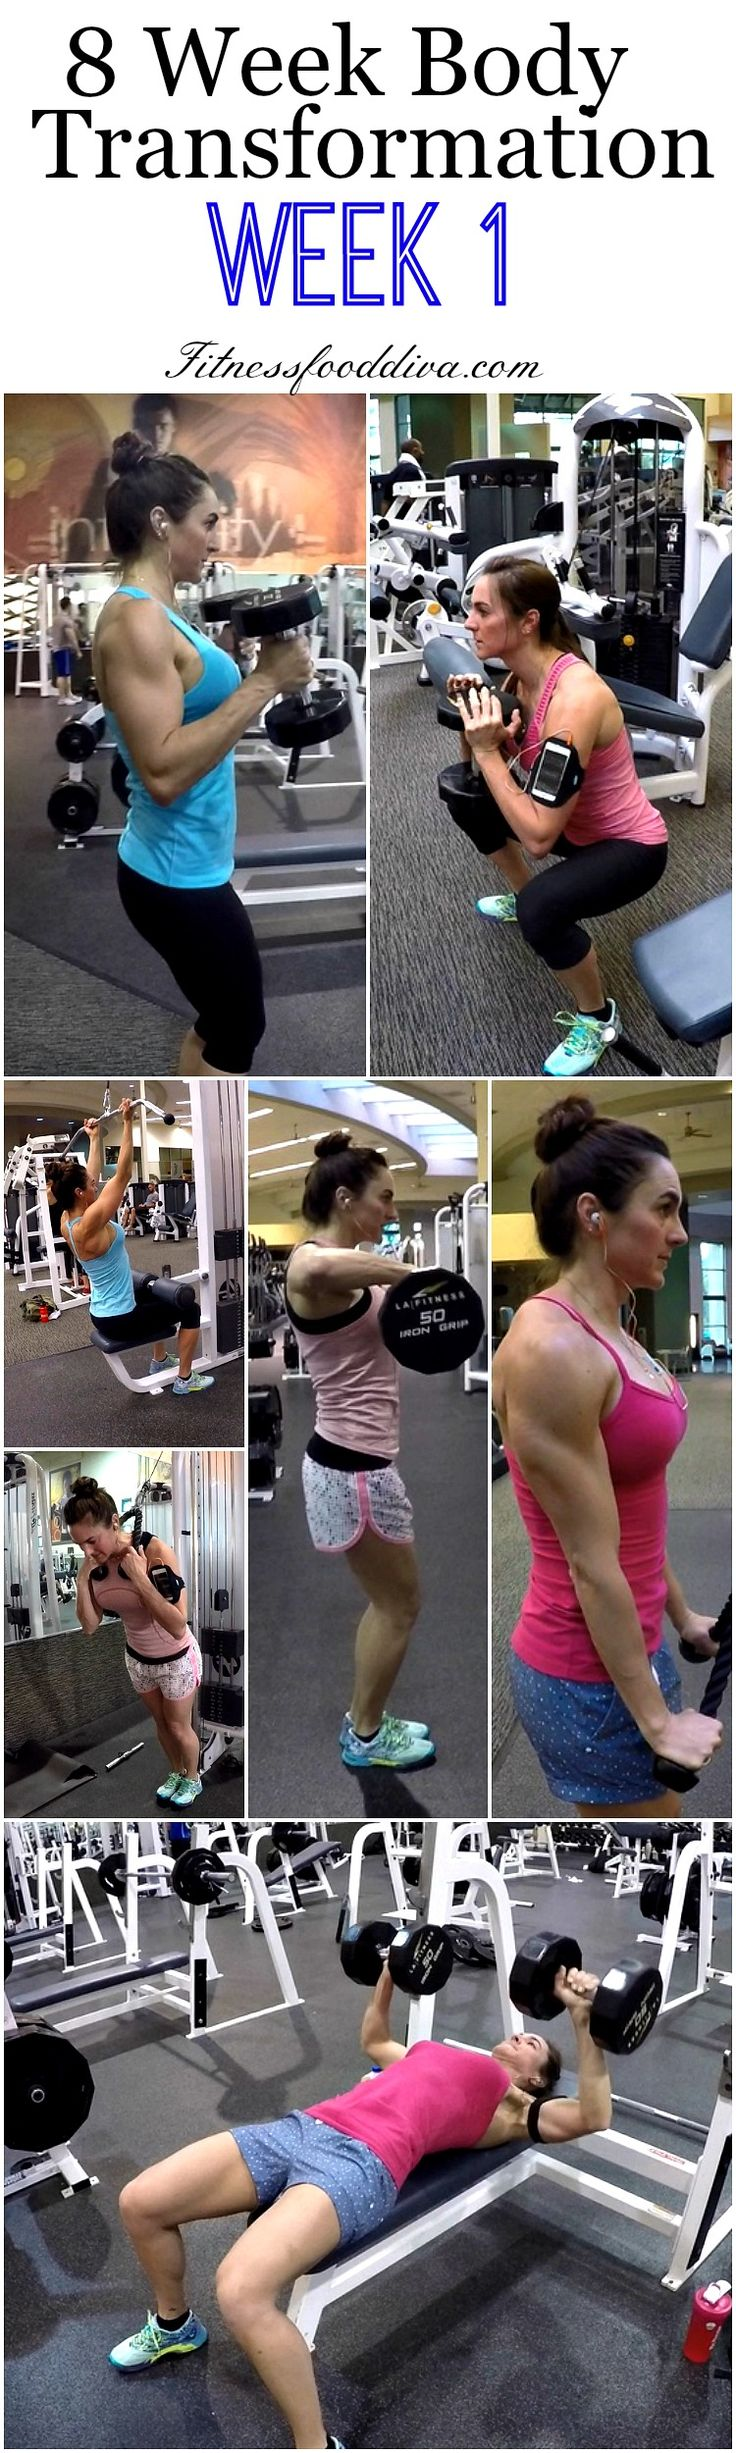 8 Week Body Transformation is going strong. Here is the entire week at your fingertips. You can download them or use the mobile site to have free access to each workout, just scroll down to the bottom of the page and have a great workout! Day 1: Legs Day 2: Chest and Triceps Day 3:...Read More »